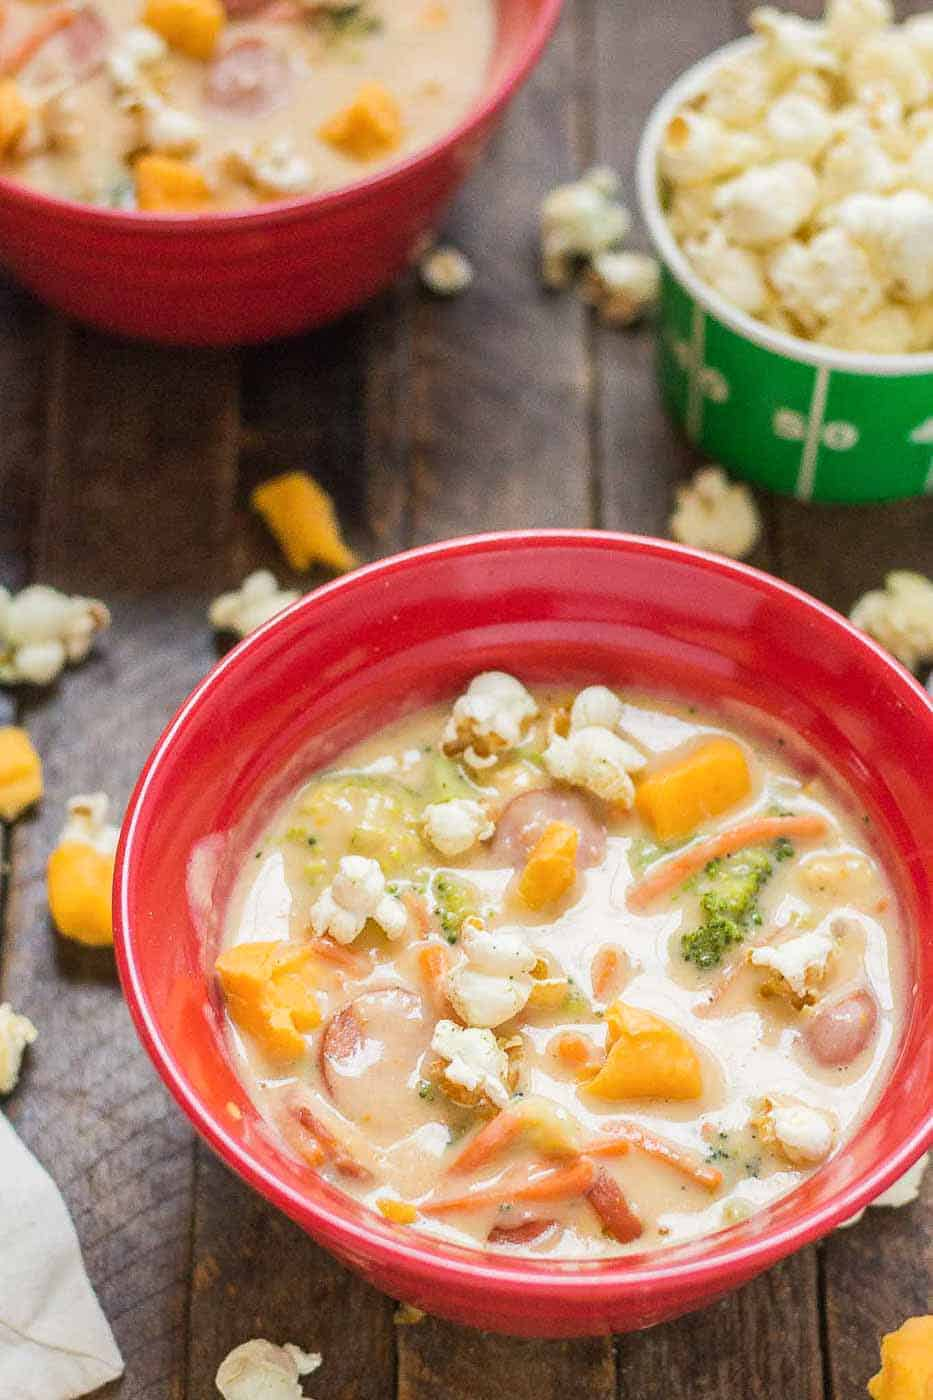 This smoked sausage and beer cheese soup is bursting with smoked sausage, sharp cheddar and beer that's stick to your ribs hearty and delicious! | Strawberry Blondie Kitchen